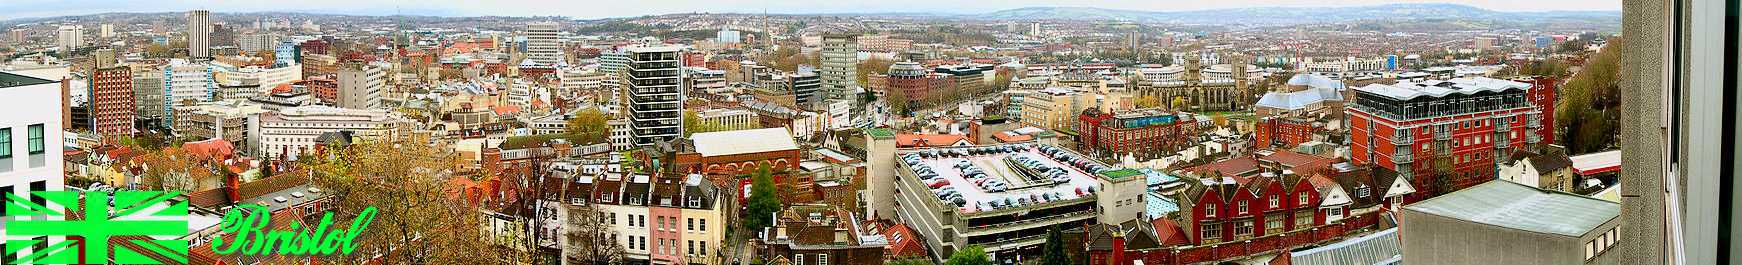 A panoramic view looking over a                                 cityscape of office blocks, old                                 buildings, church spires and a                                 multi-story car park. In the distance                                 hills.